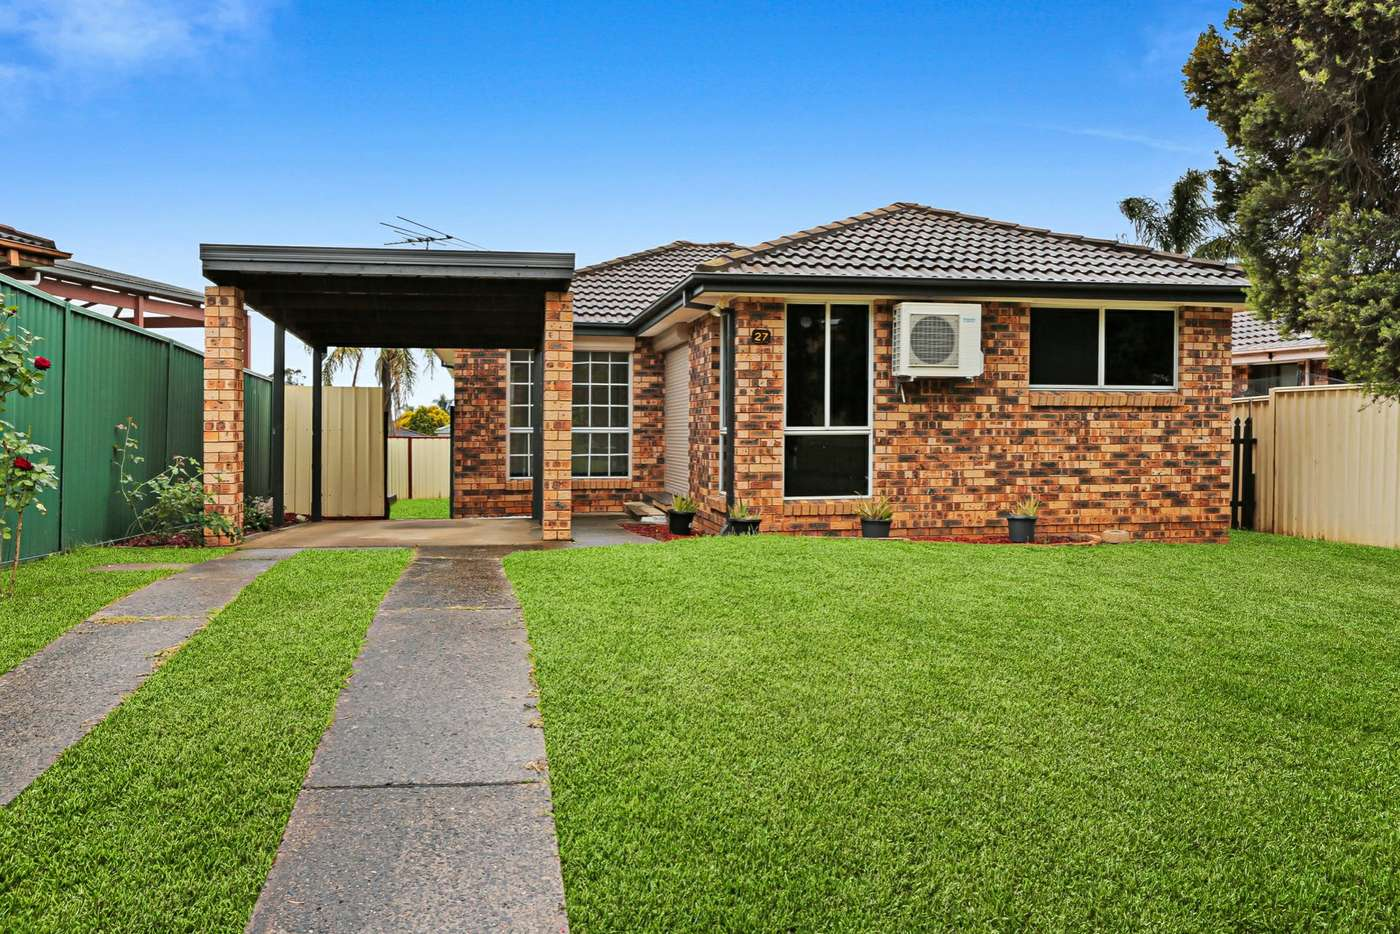 Main view of Homely house listing, 27 Missouri  St, Kearns NSW 2558